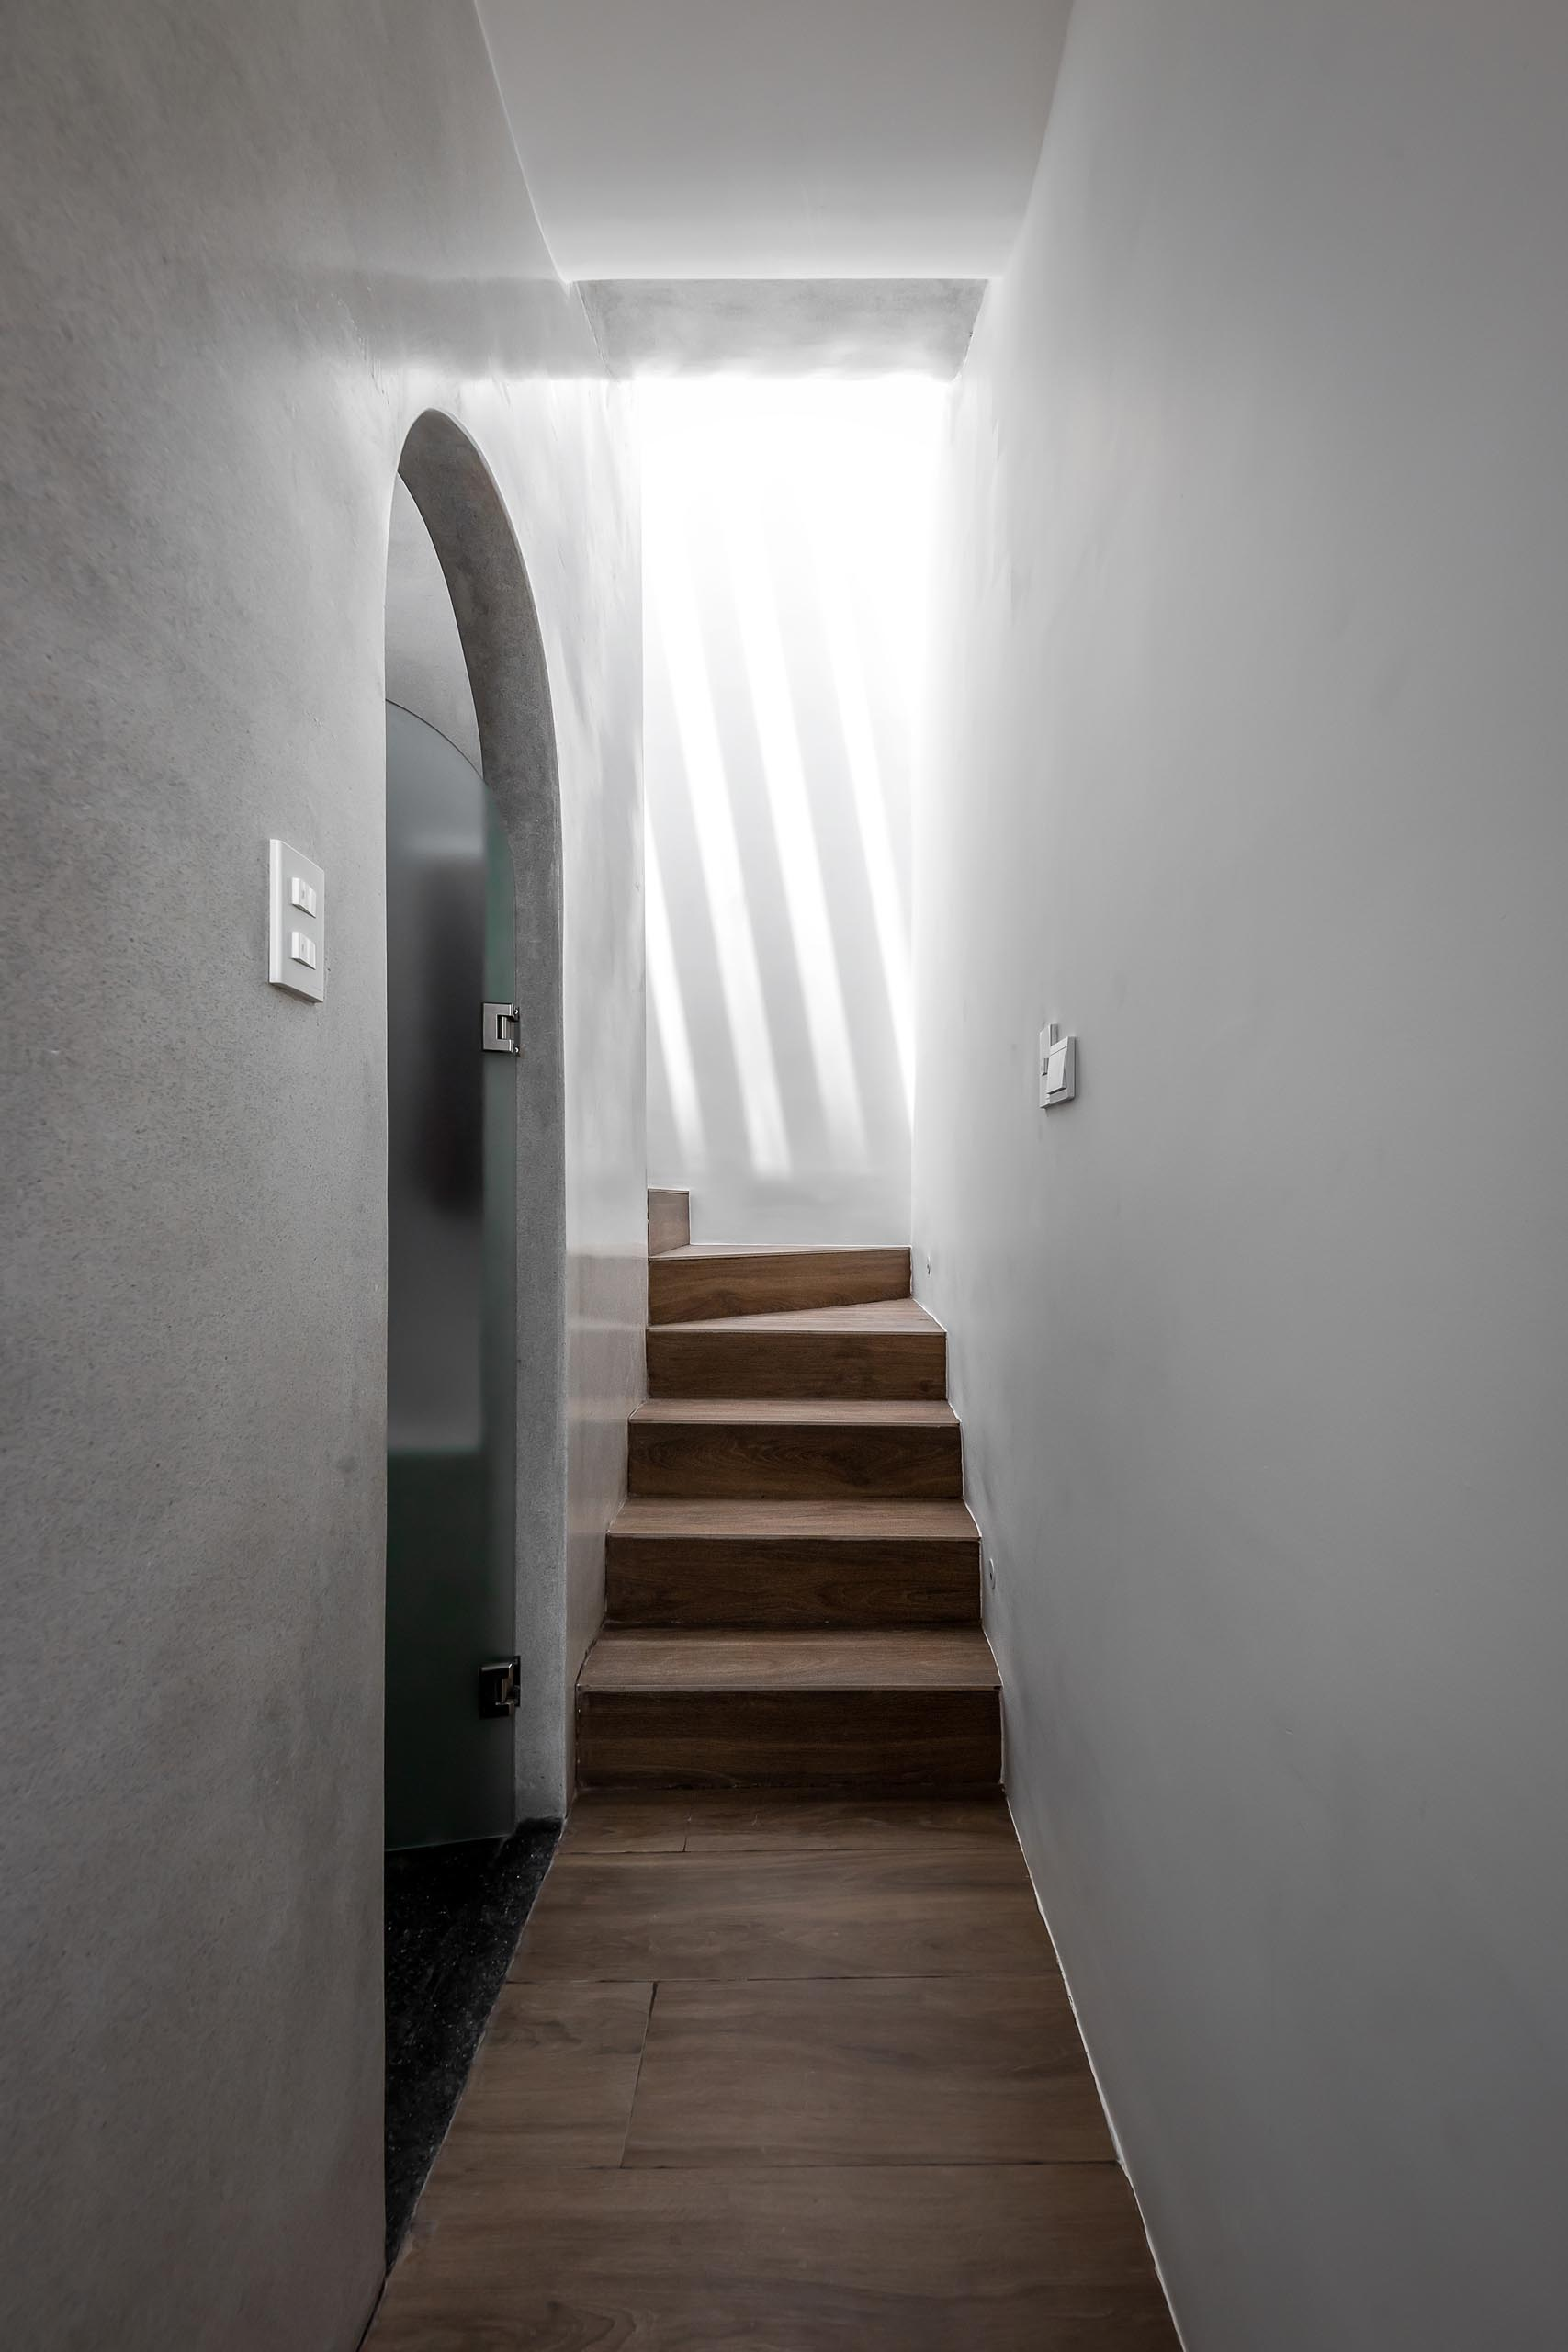 A modern home with stairs that are lit by skylights and spotlights.